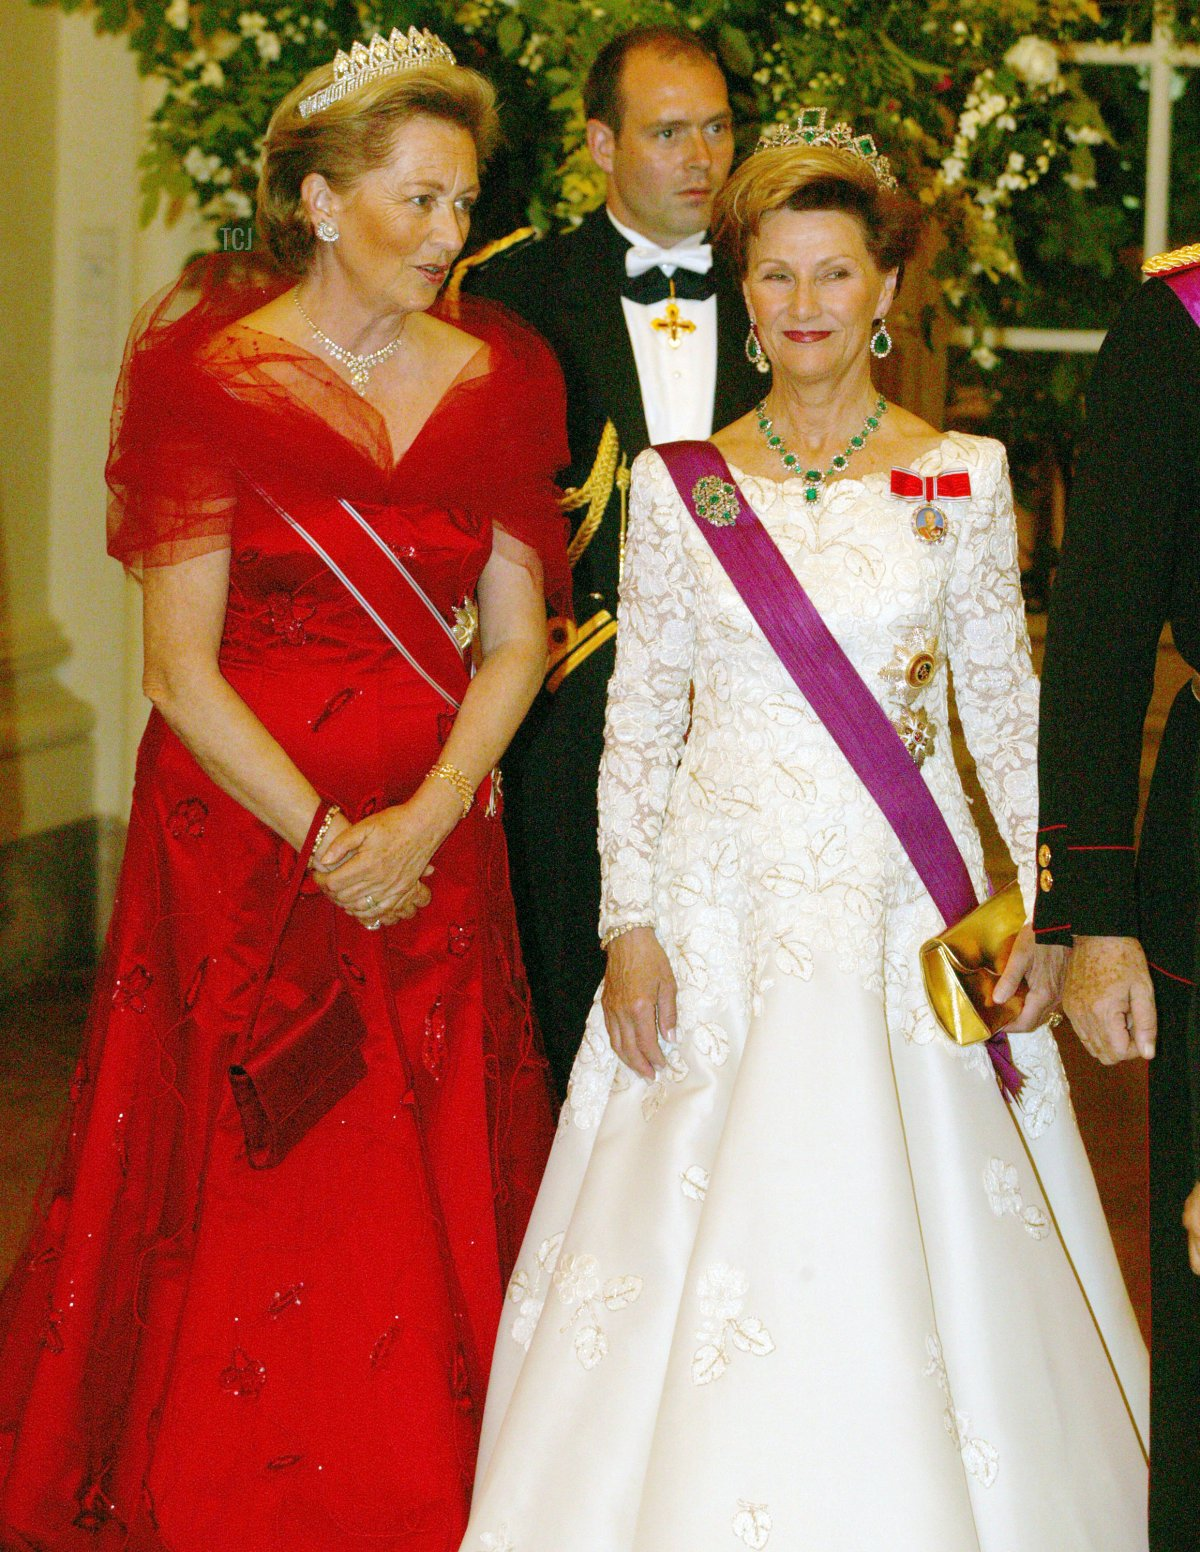 Queen Paola from Belgium (L) and Queen Sonja from Norway pose for a photo May 20, 2003 in Brussels, Belgium